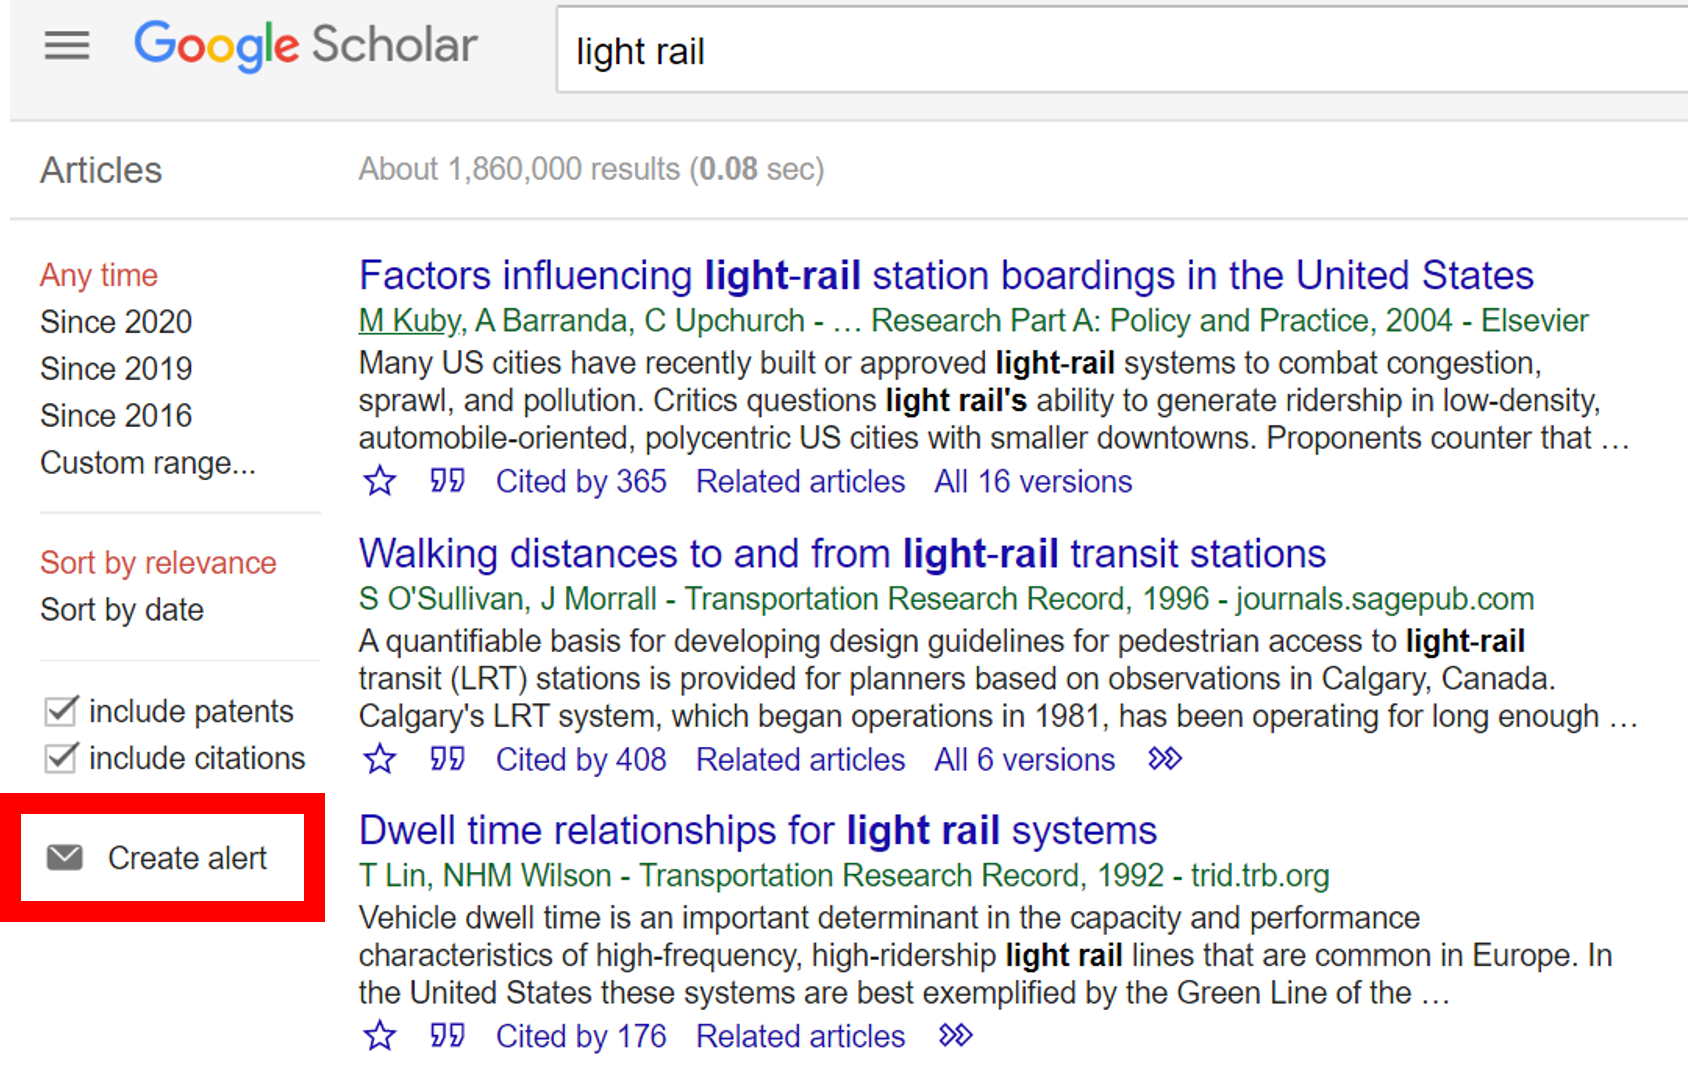 screenshot of how to create an alert using Google Scholar